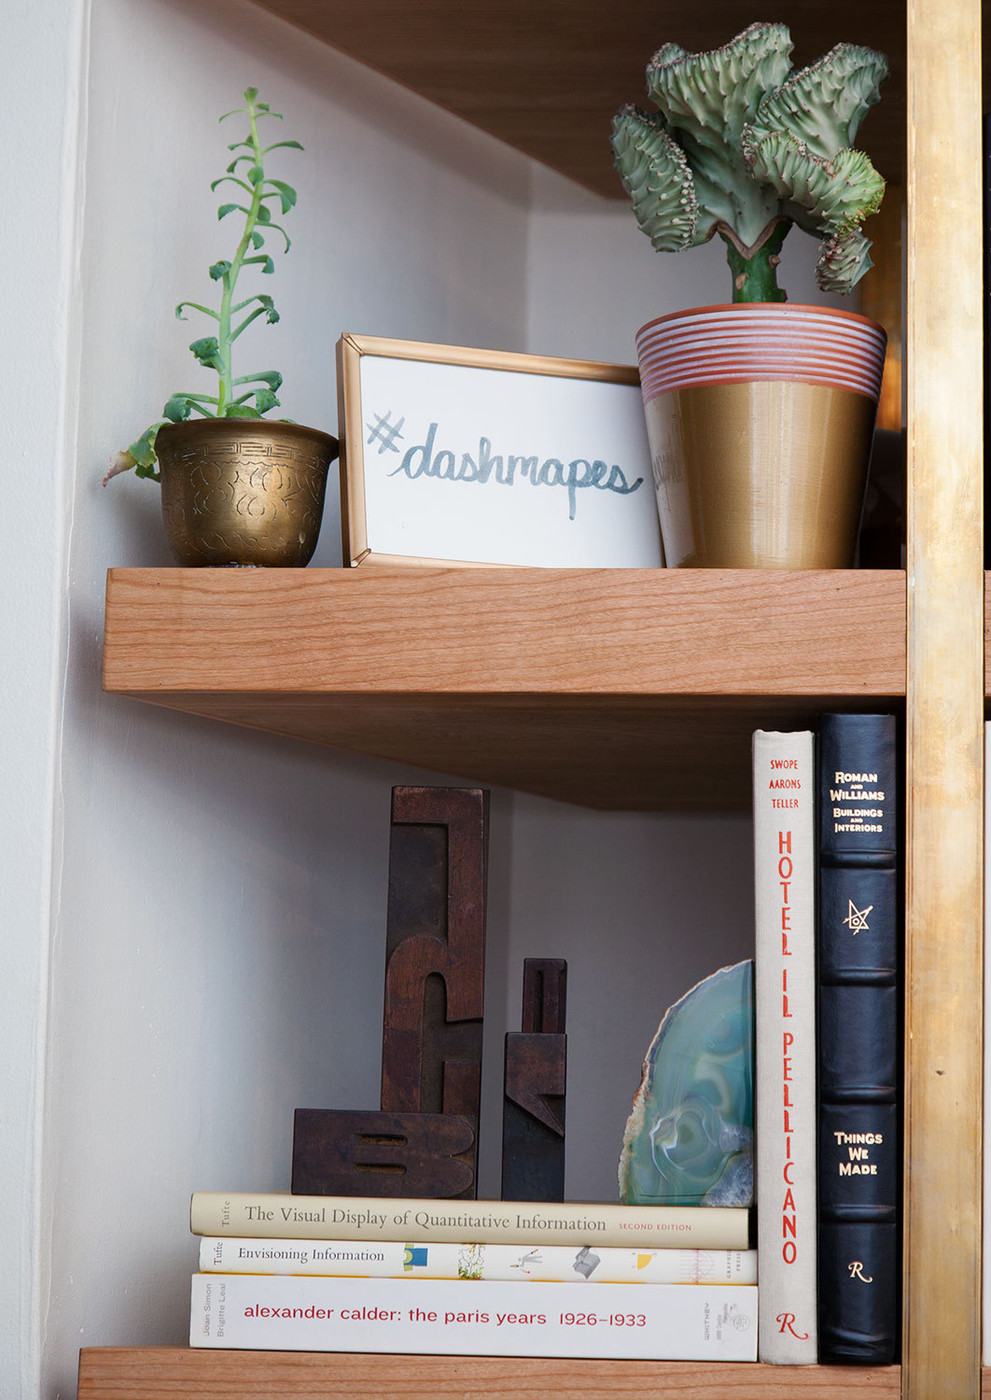 Interesting objects on a styled bookshelf